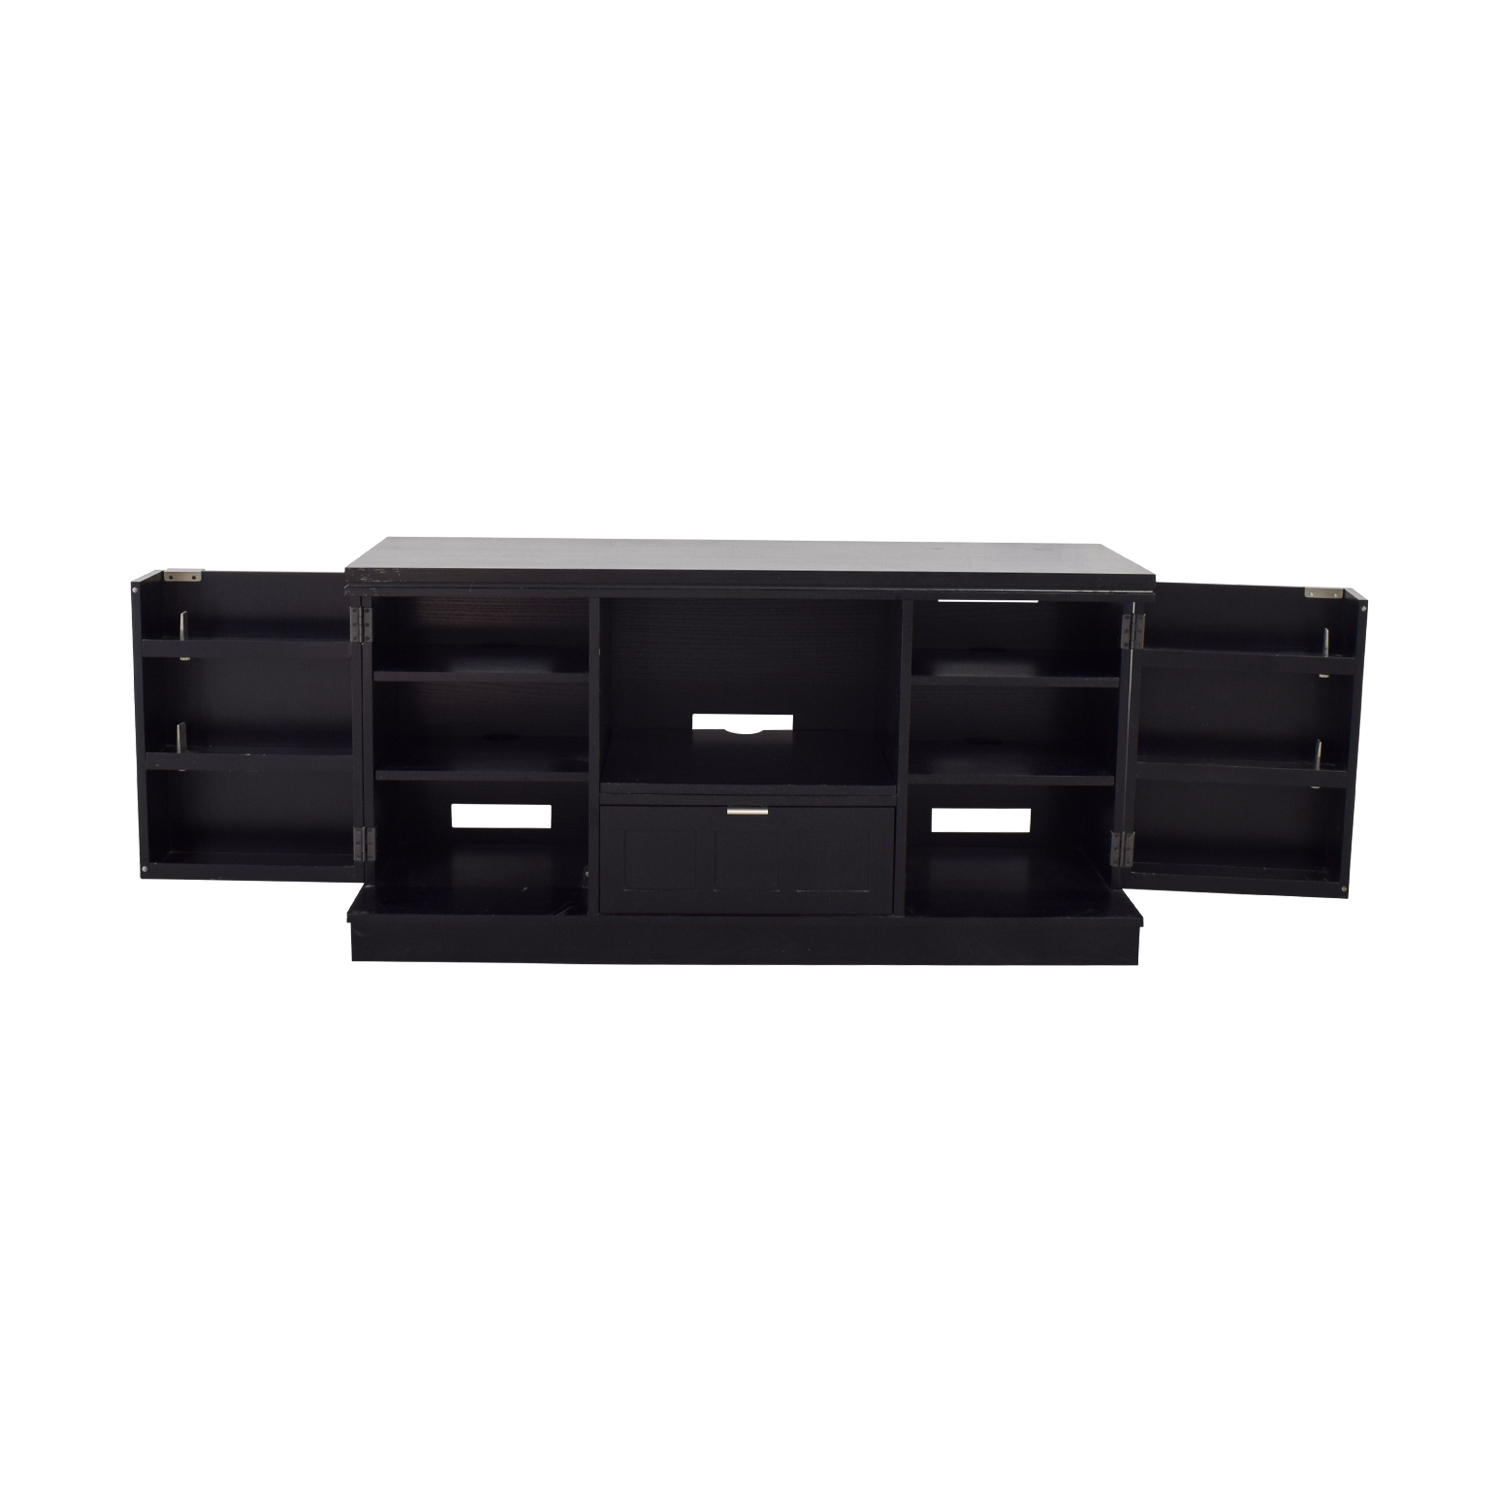 Crate & Barrel Crate & Barrel Wood Media Console discount